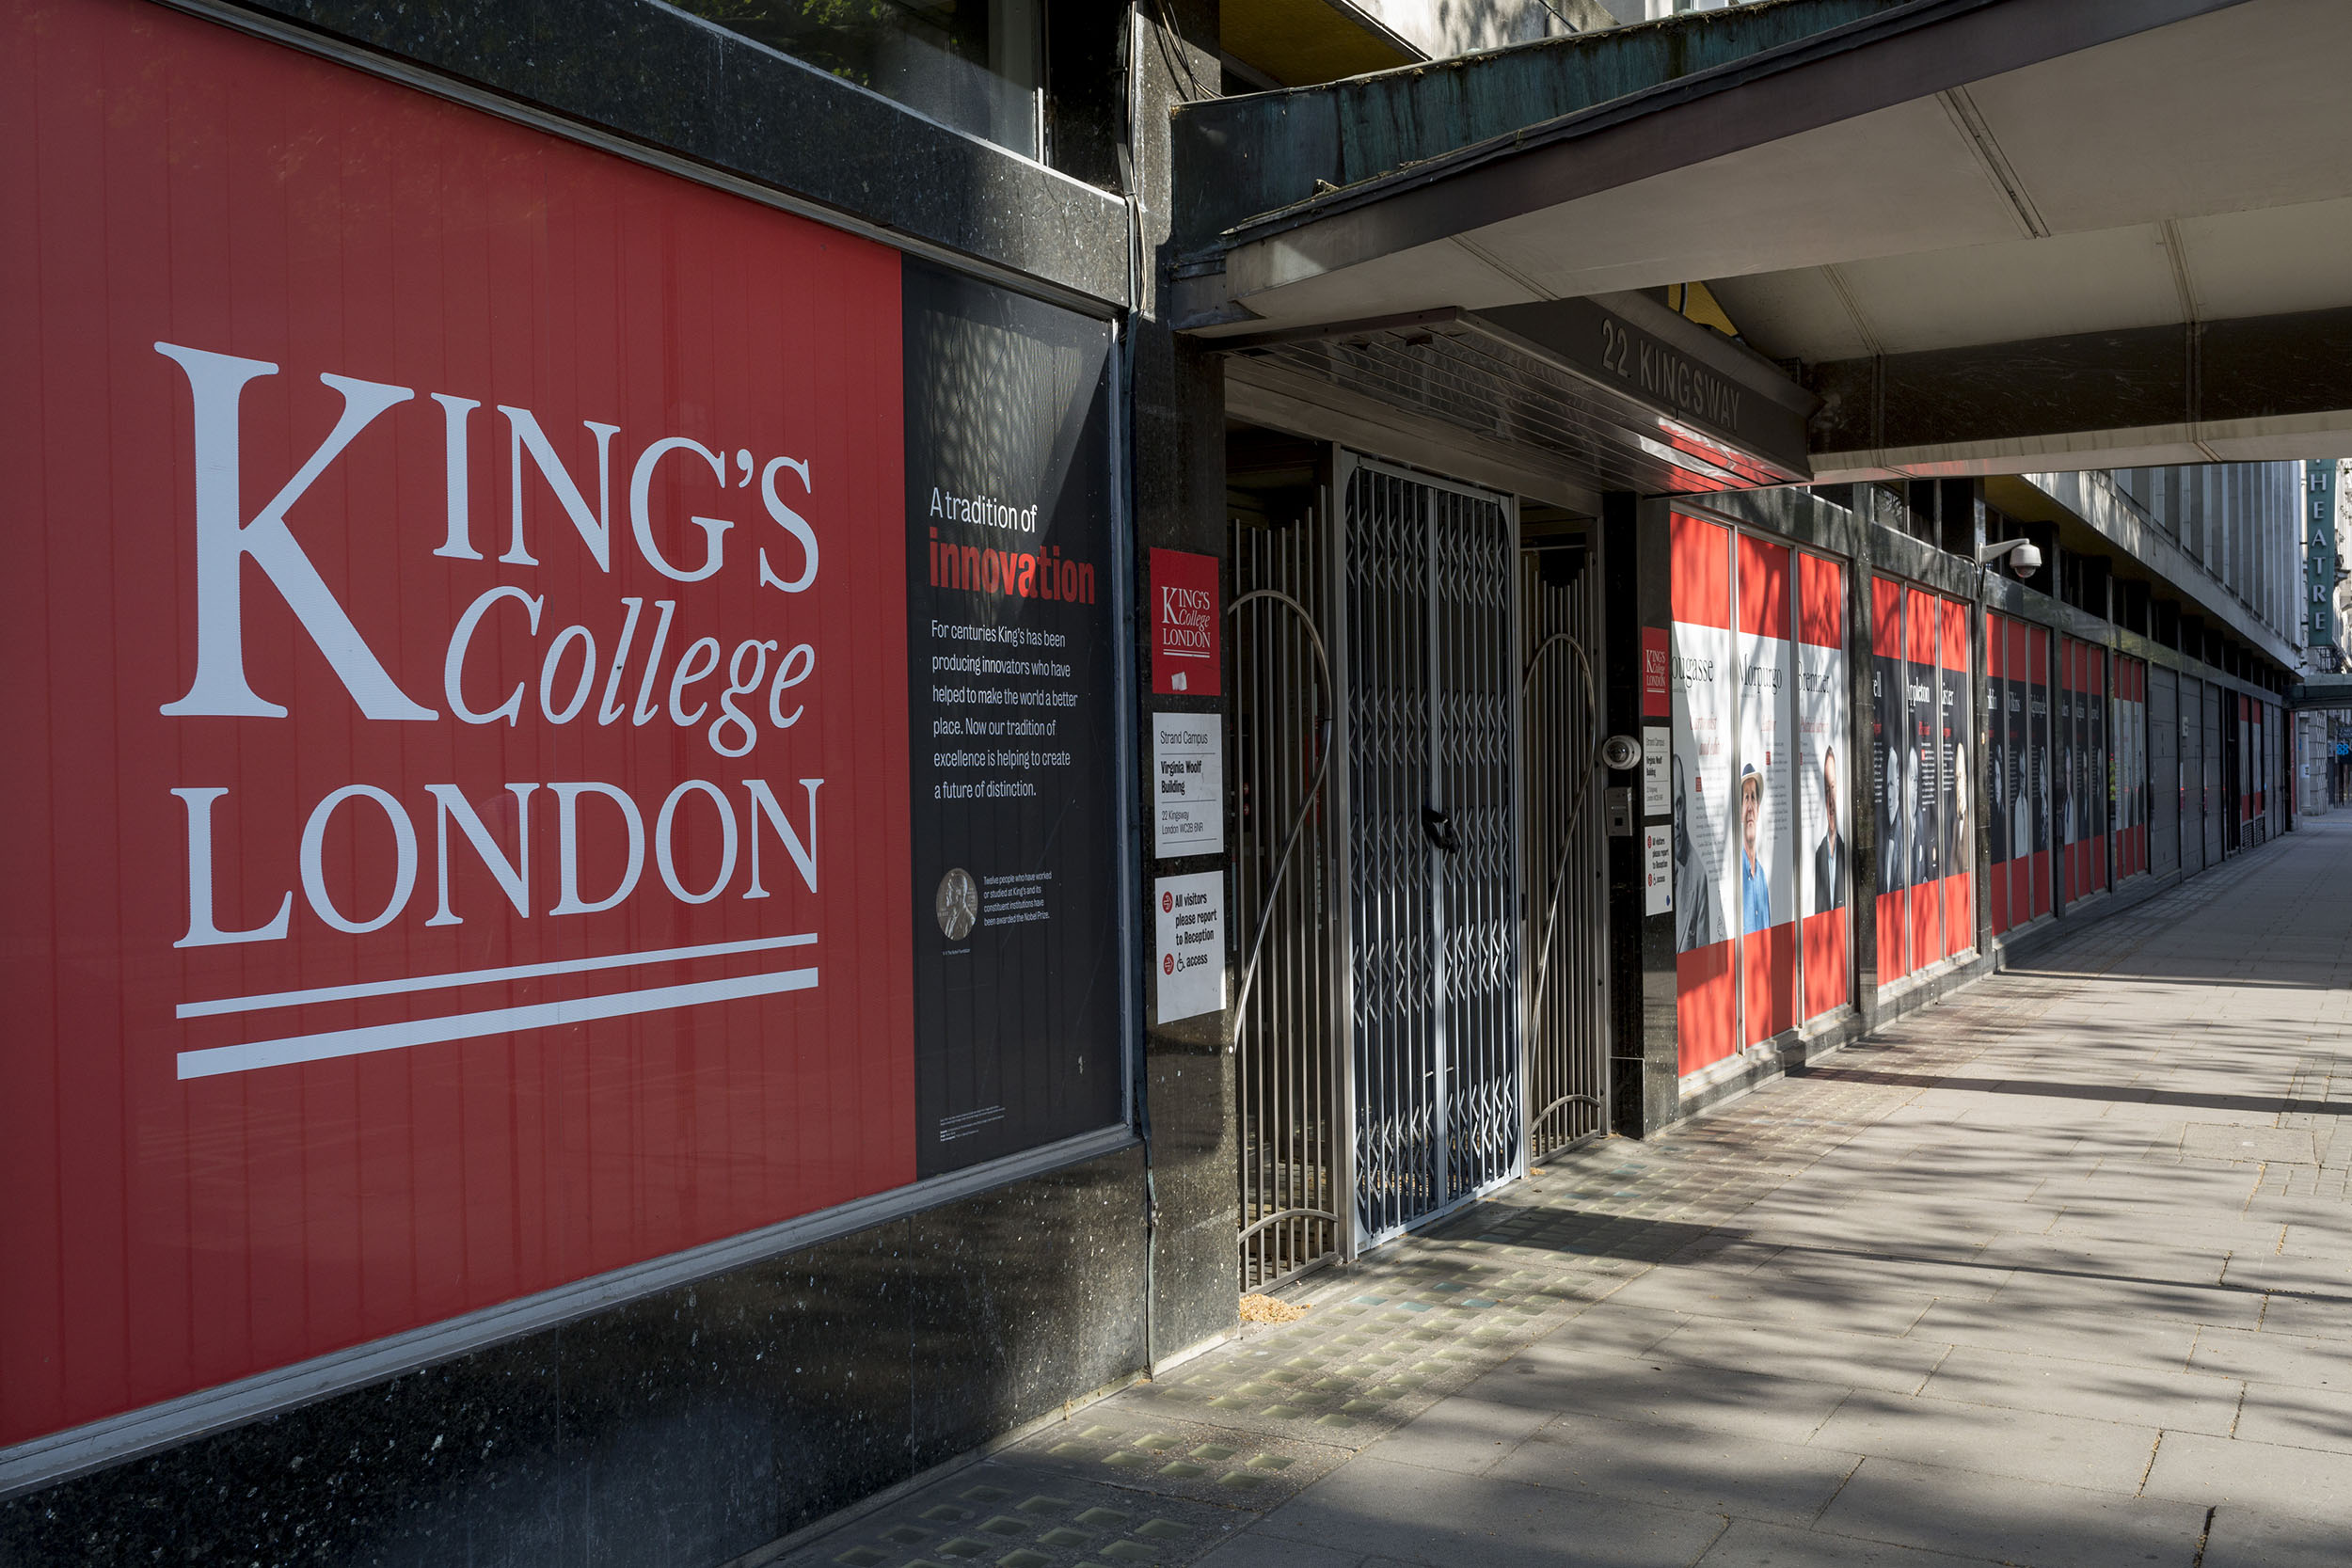 King's College London a public research university located in London, England, on April 23.